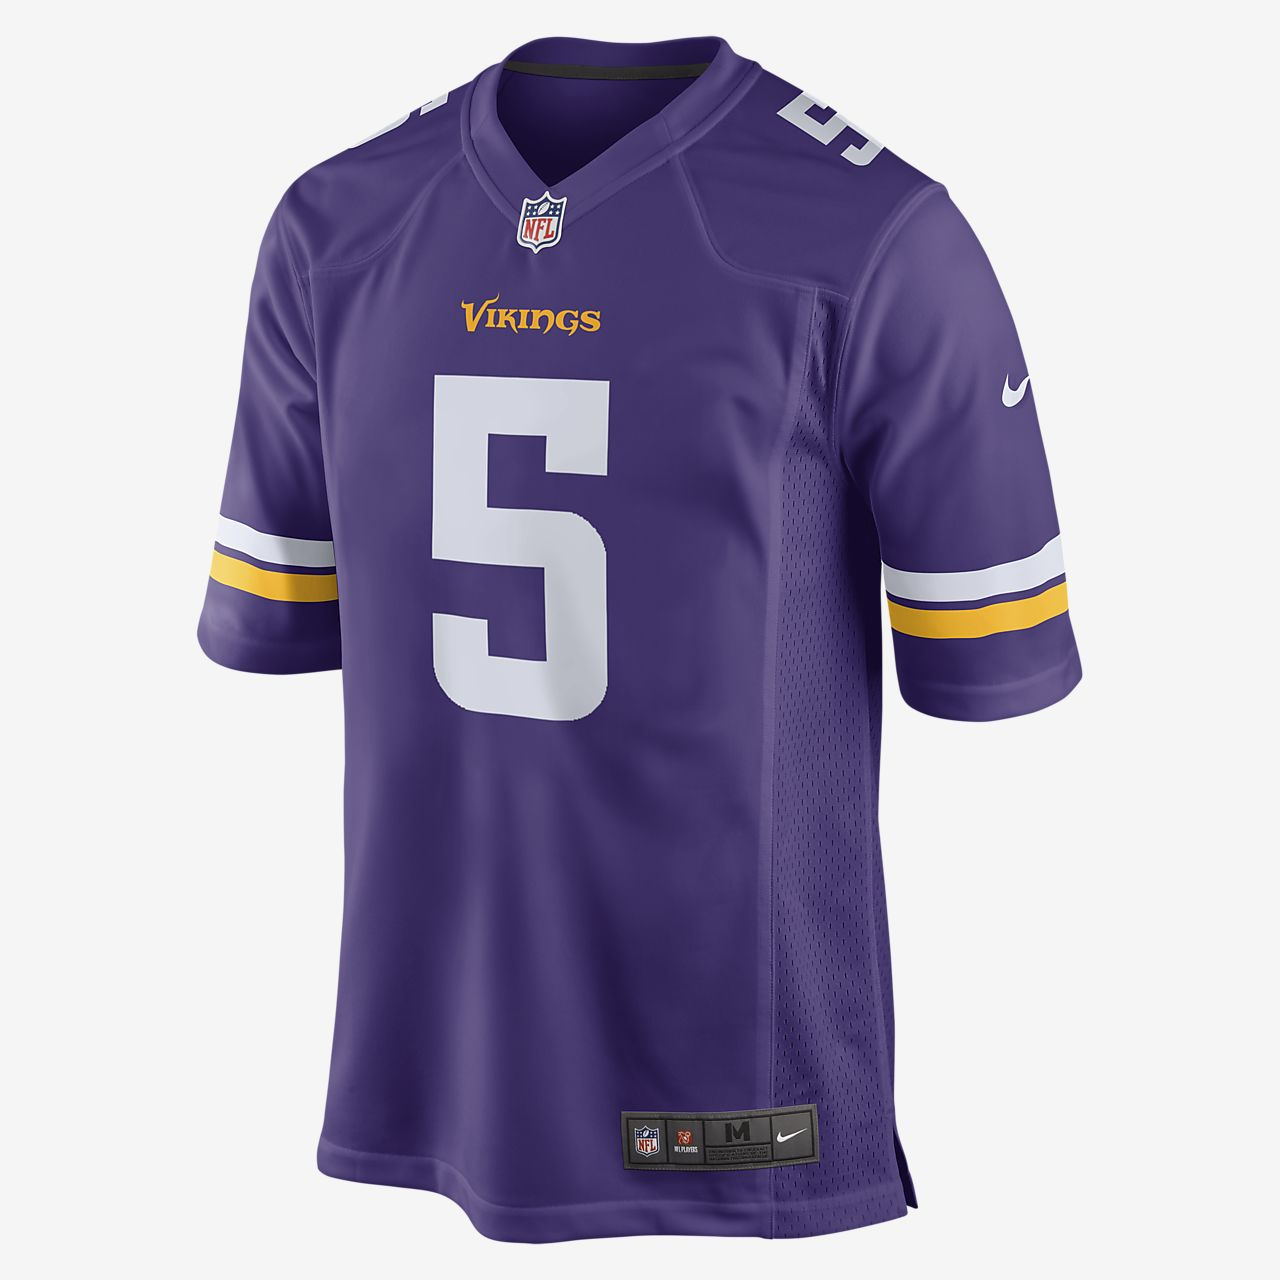 d1277ab5 NFL Minnesota Vikings (Teddy Bridgewater) Men's American Football Home Game  Jersey